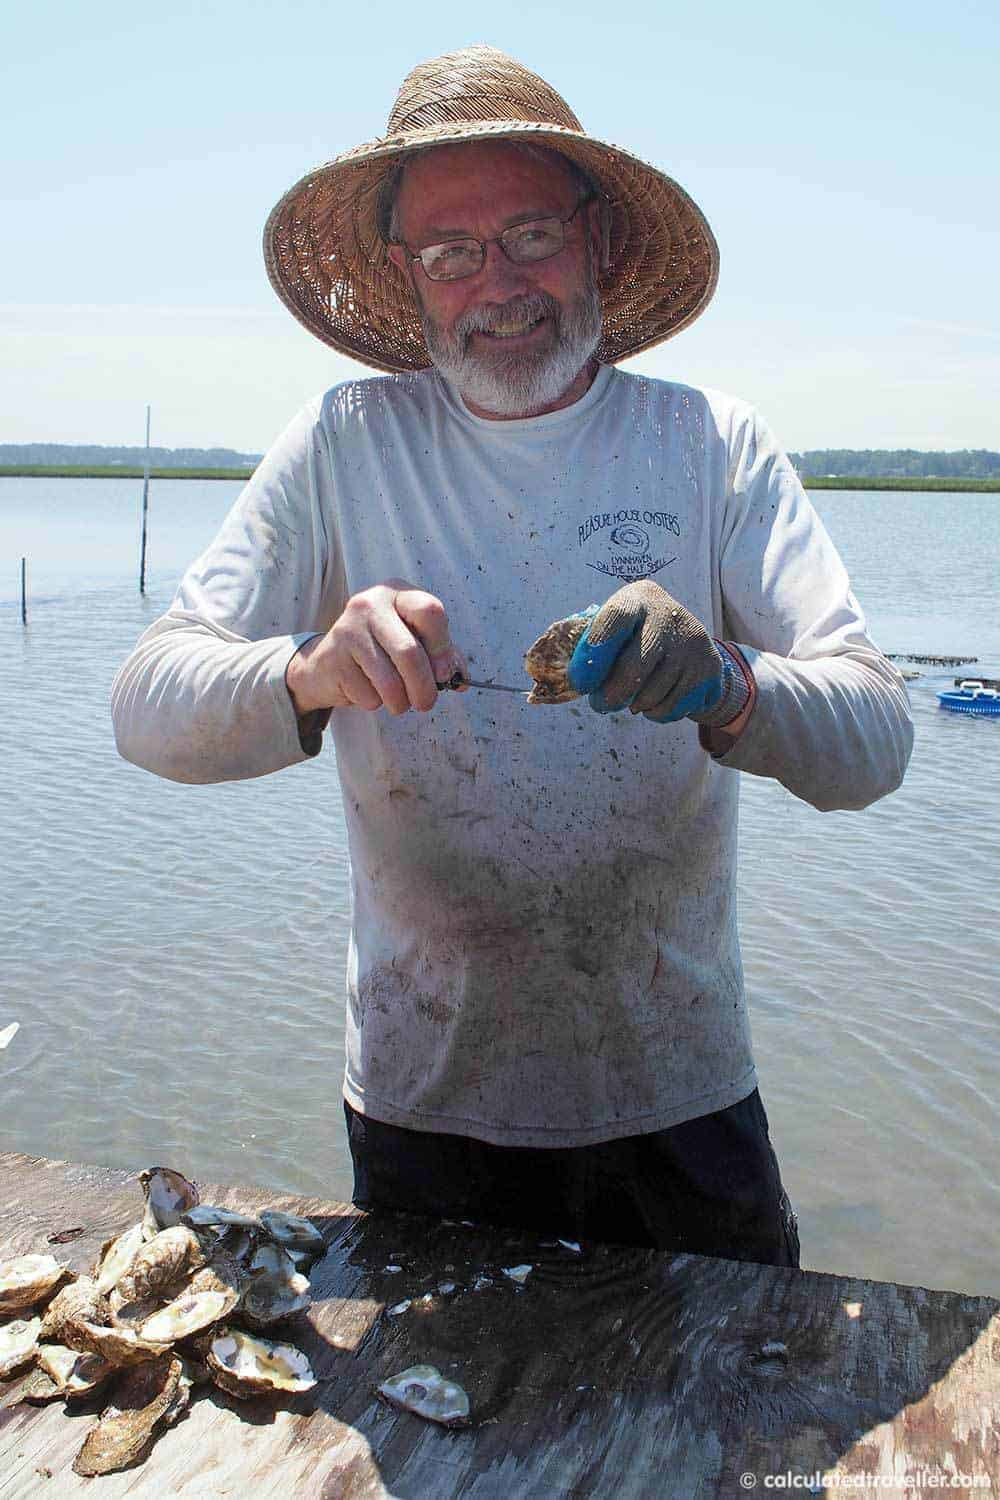 A Pleasure House Oyster Tour in Lynnhaven Virginia - Captain Lee shucking oysters for us.